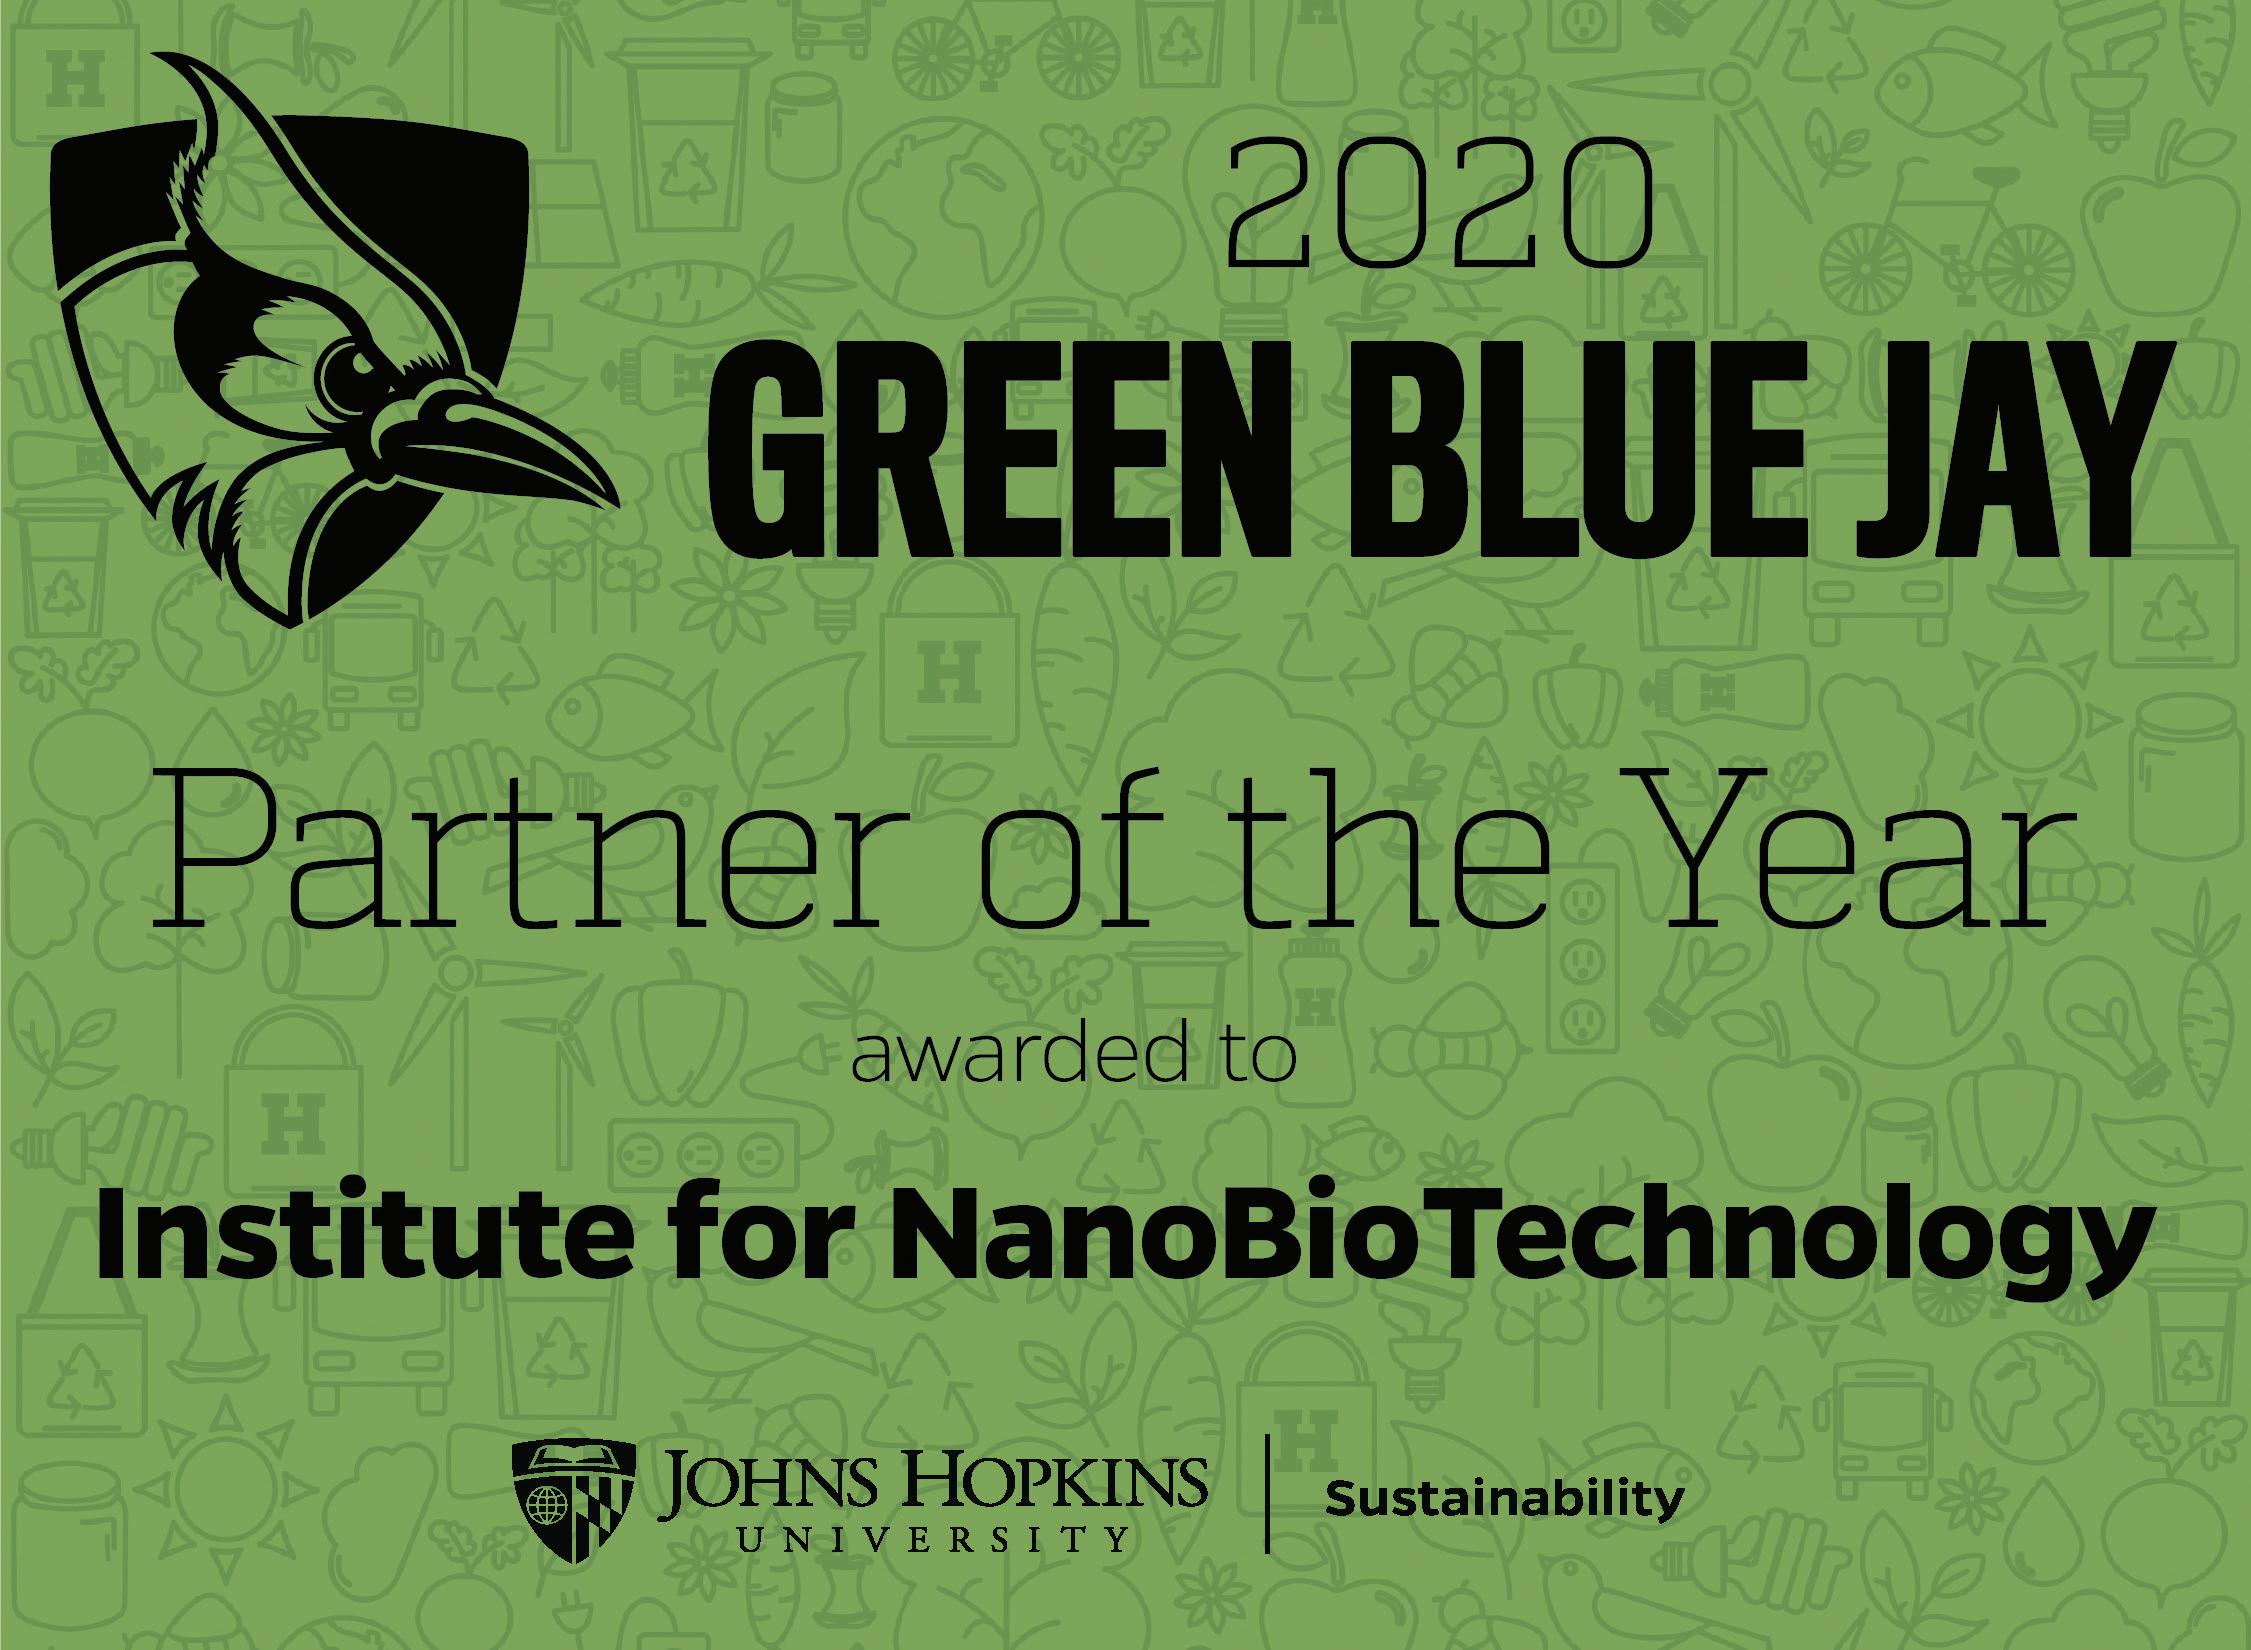 Page 26 of The INBT Recognized with Green Blue Jay Award